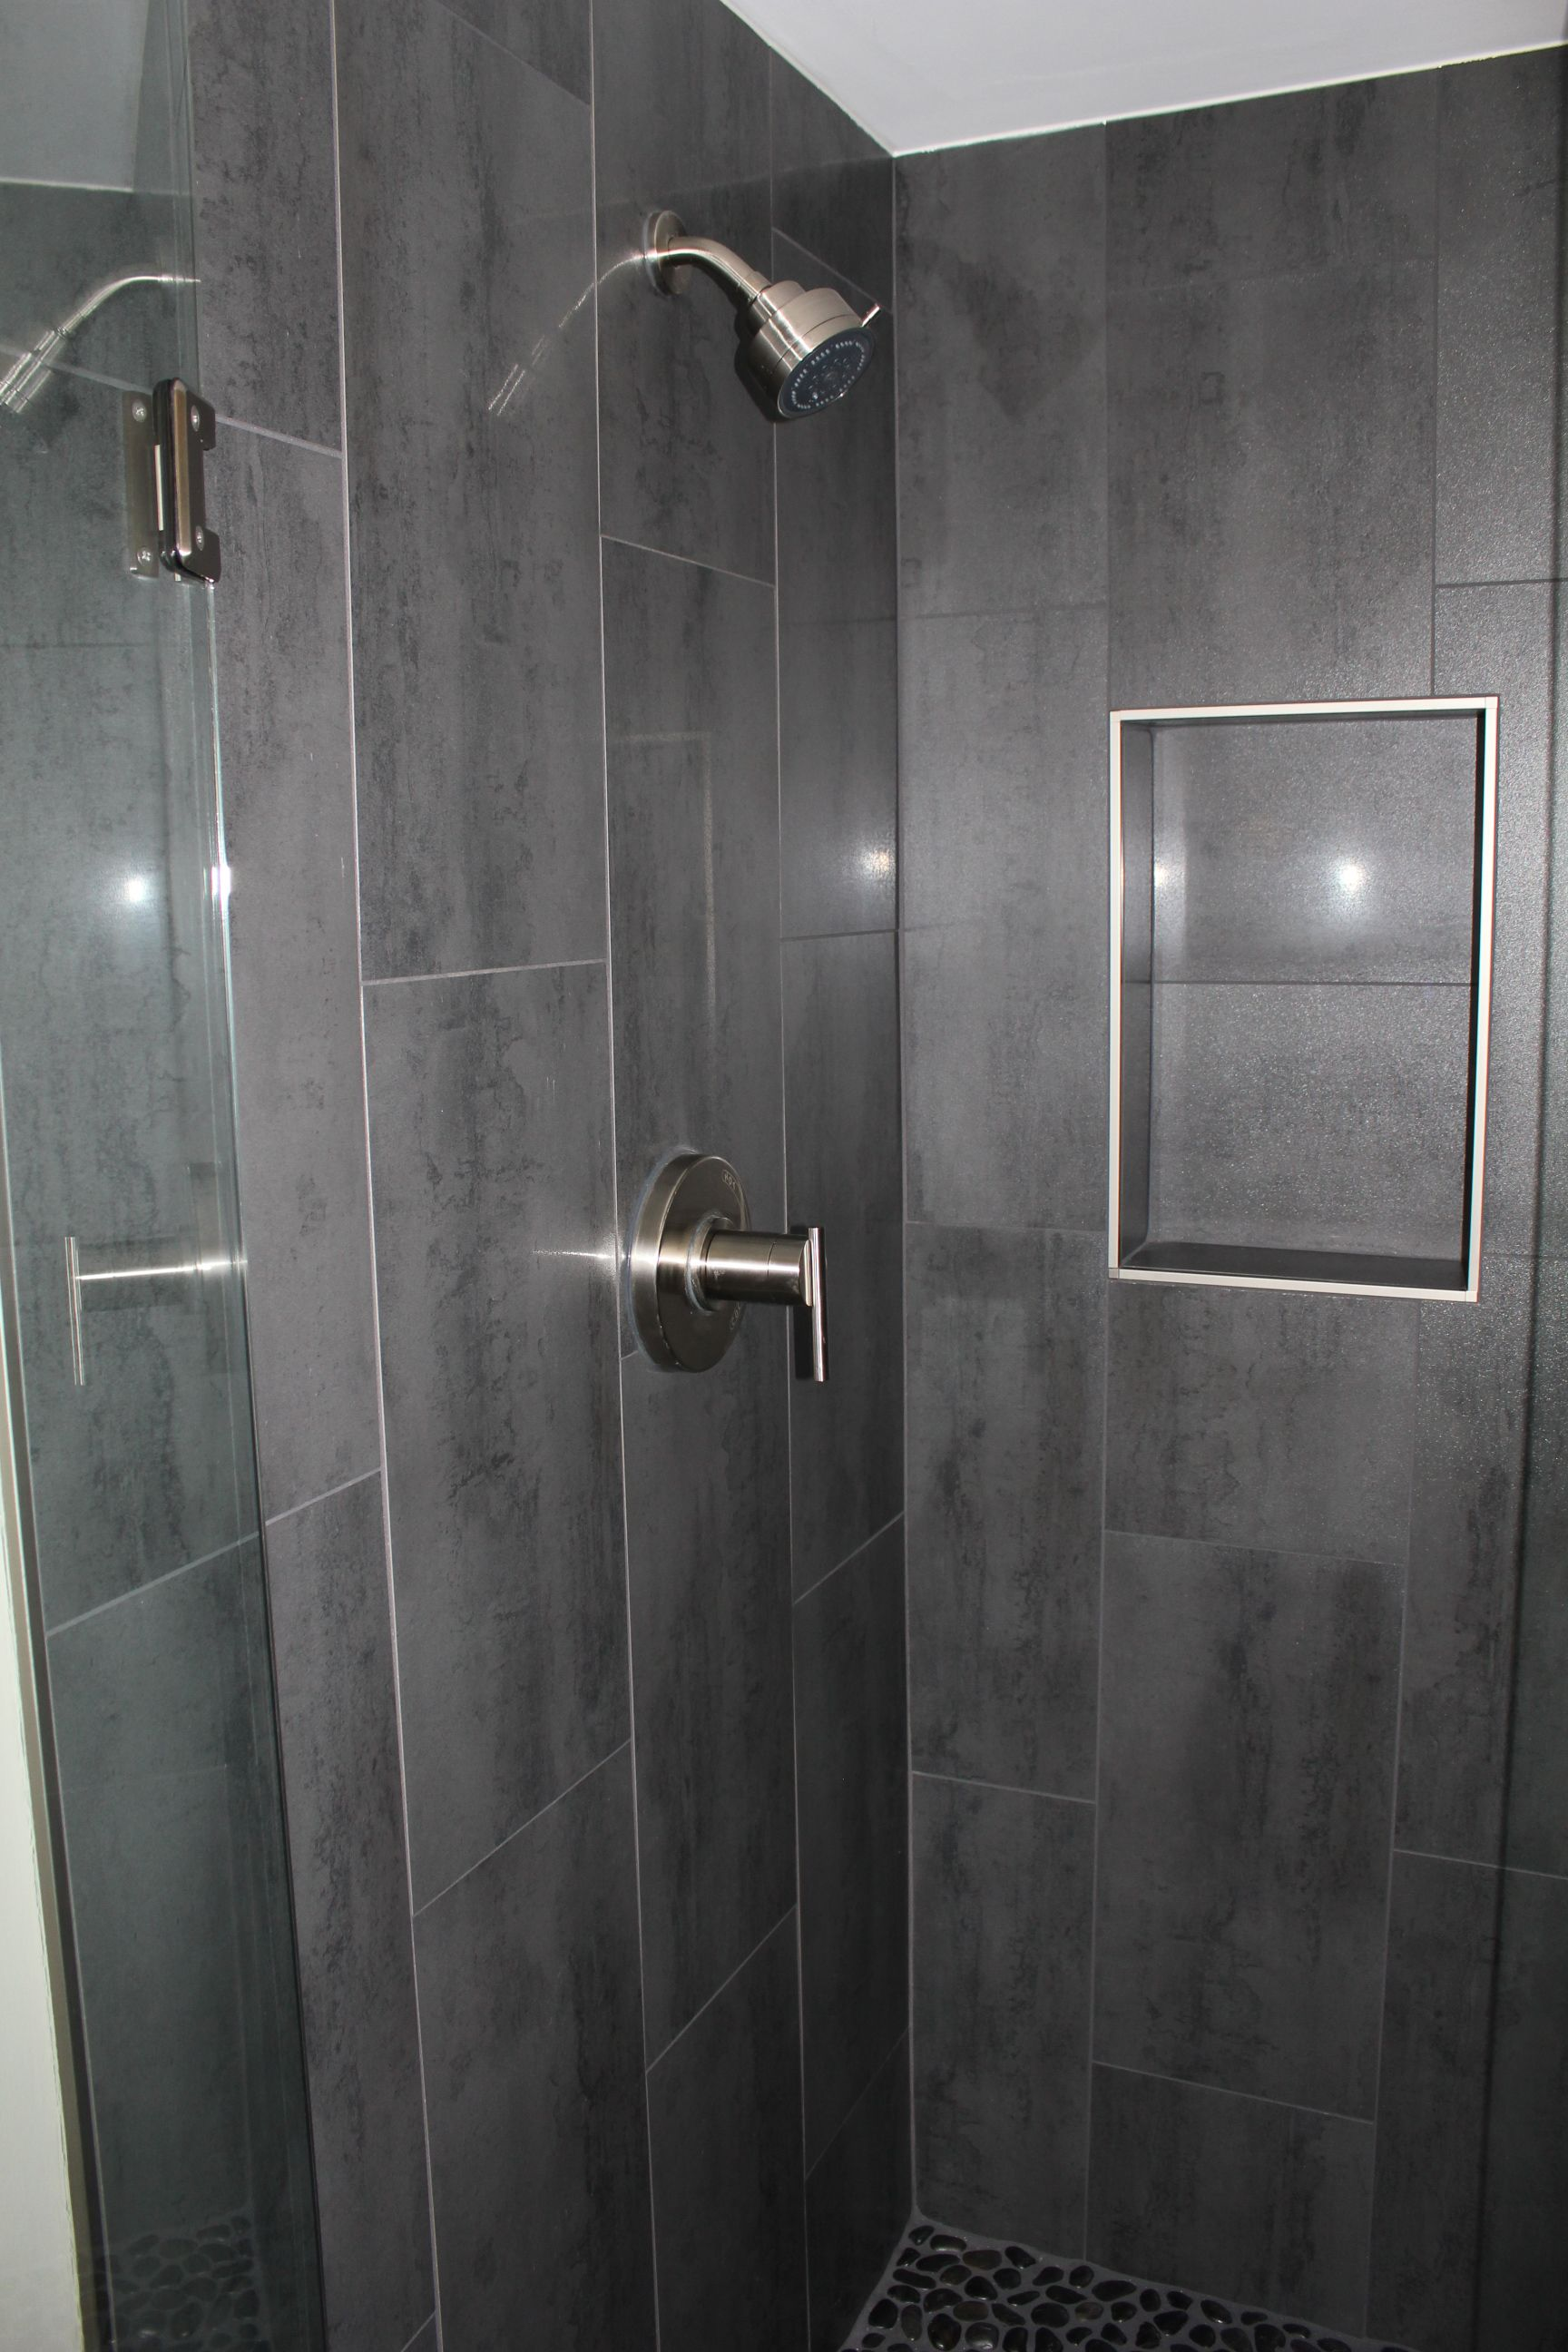 Vertical shower tiles decorating ideas pinterest for Bathroom 12x24 tile